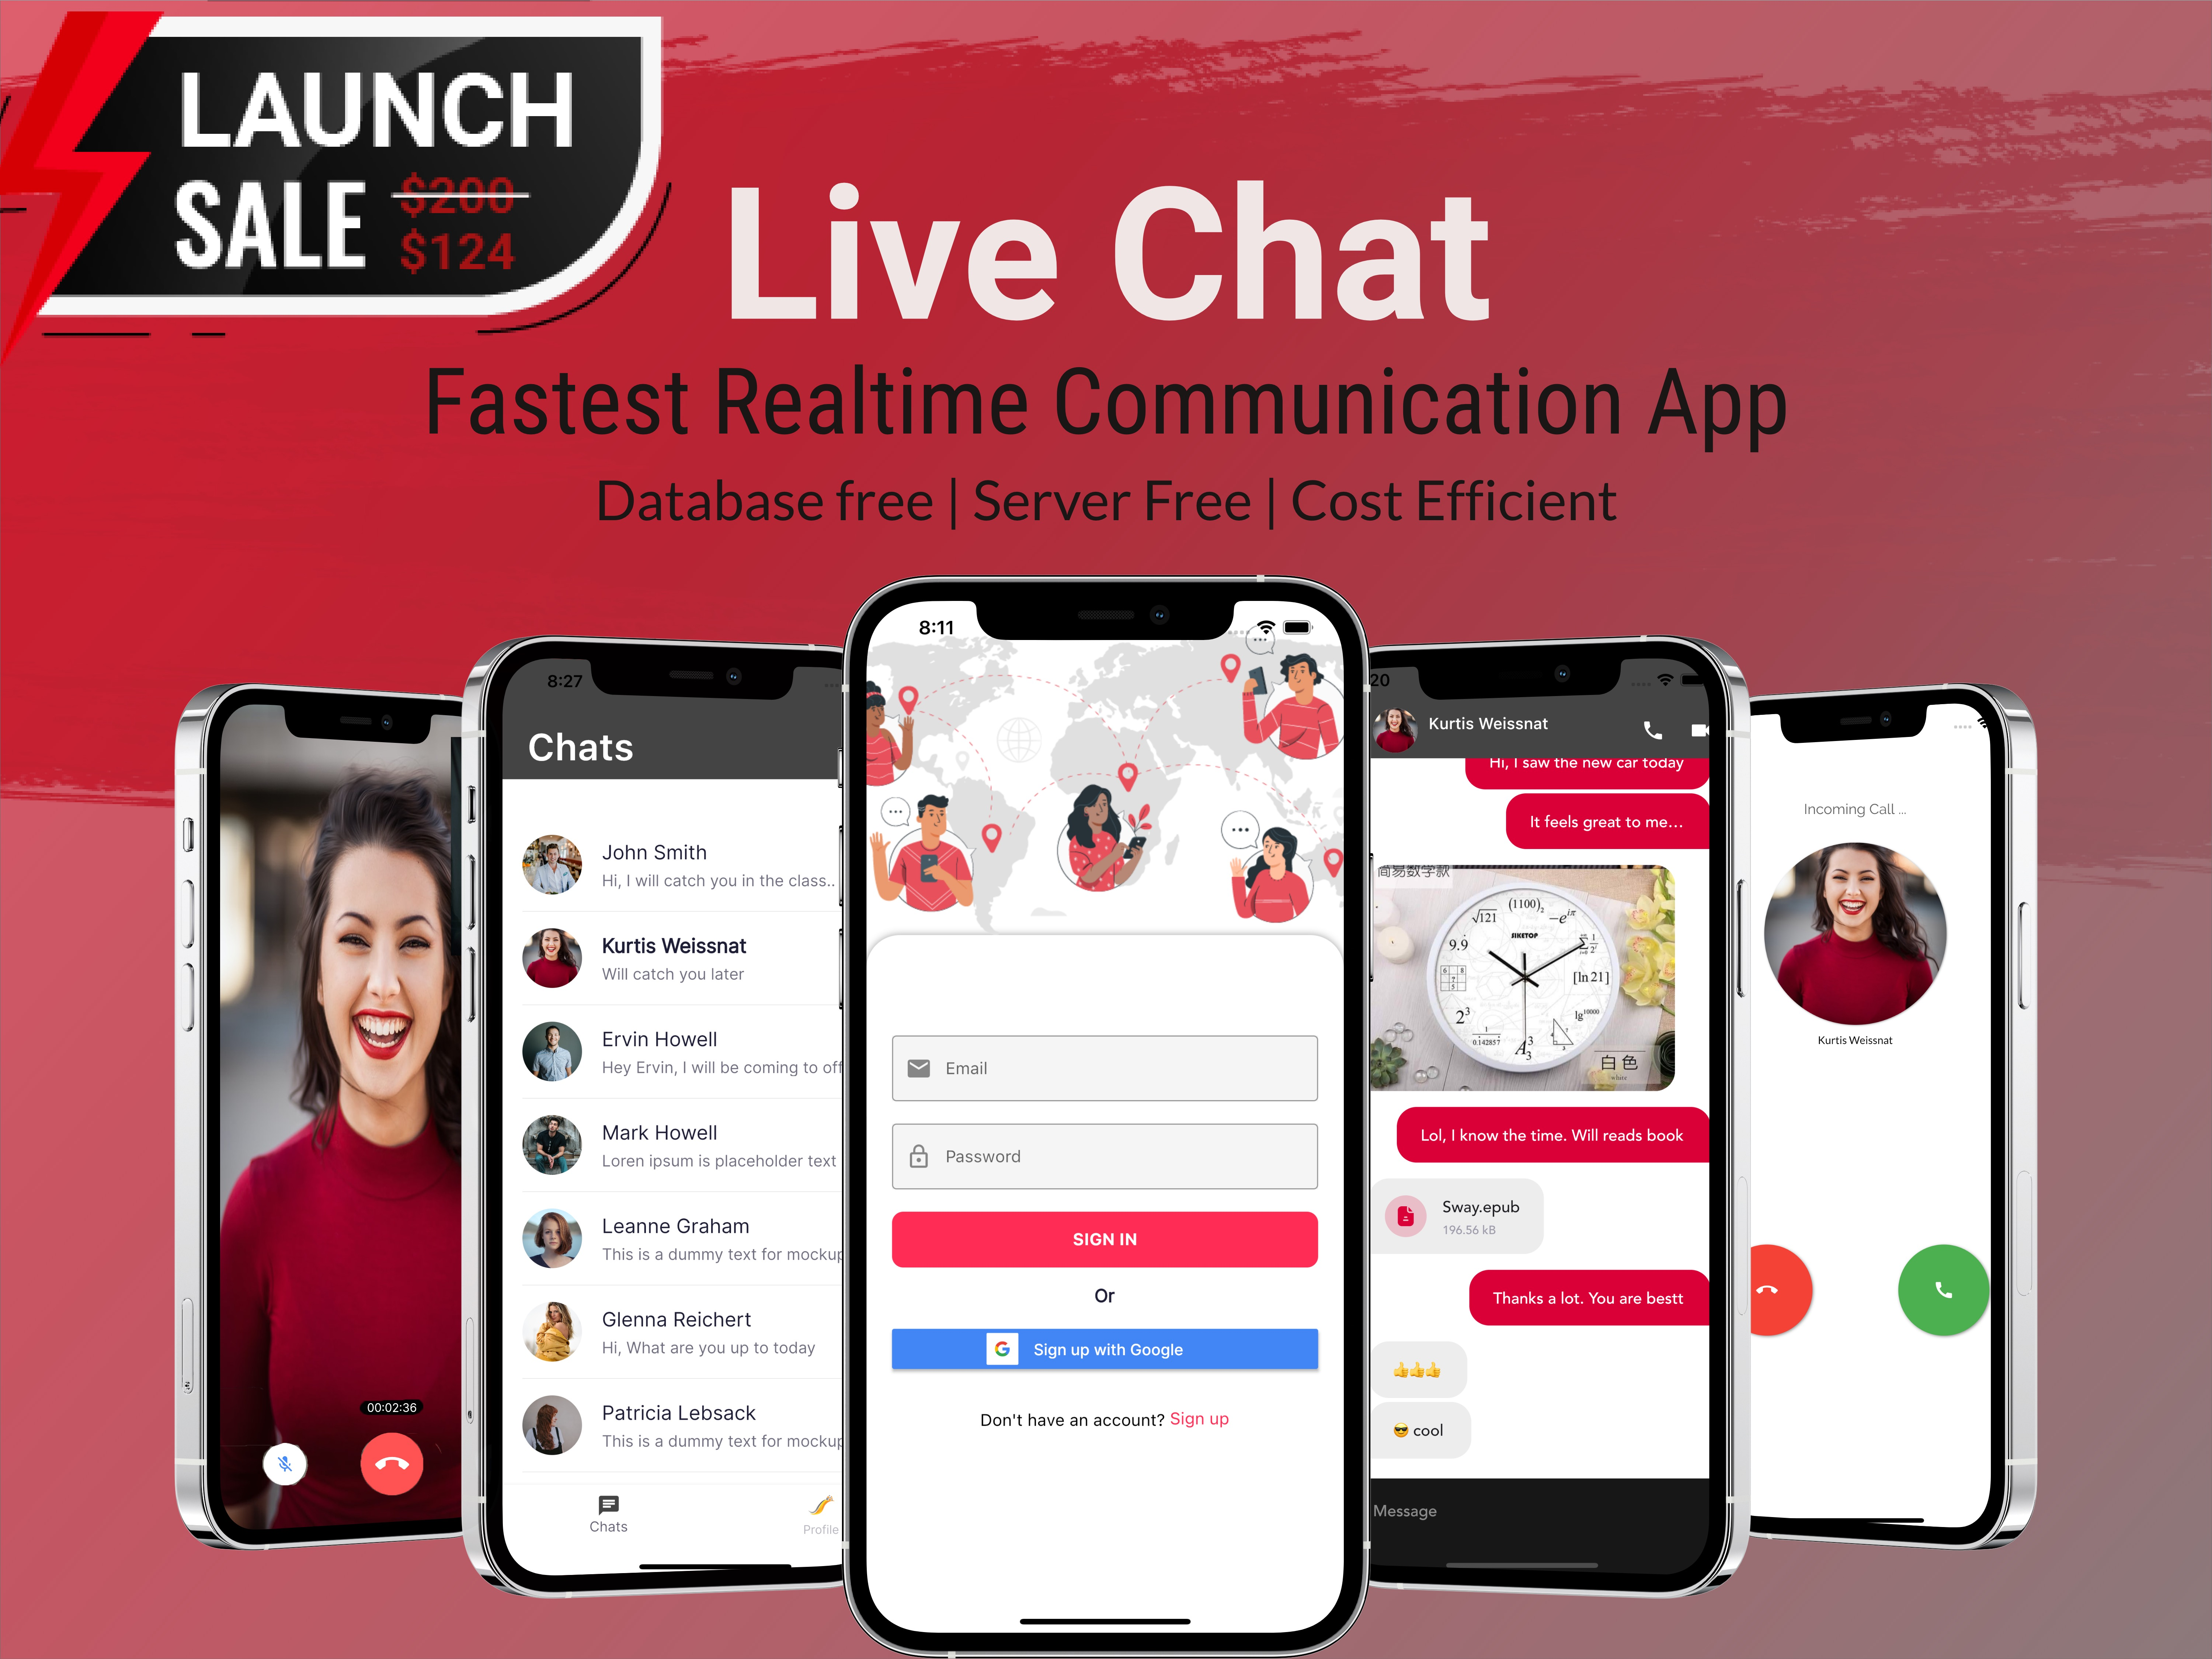 LiveChat - Flutter RealTime Chat App with No Database | Video & Voice Calling | Android & iOS - 1